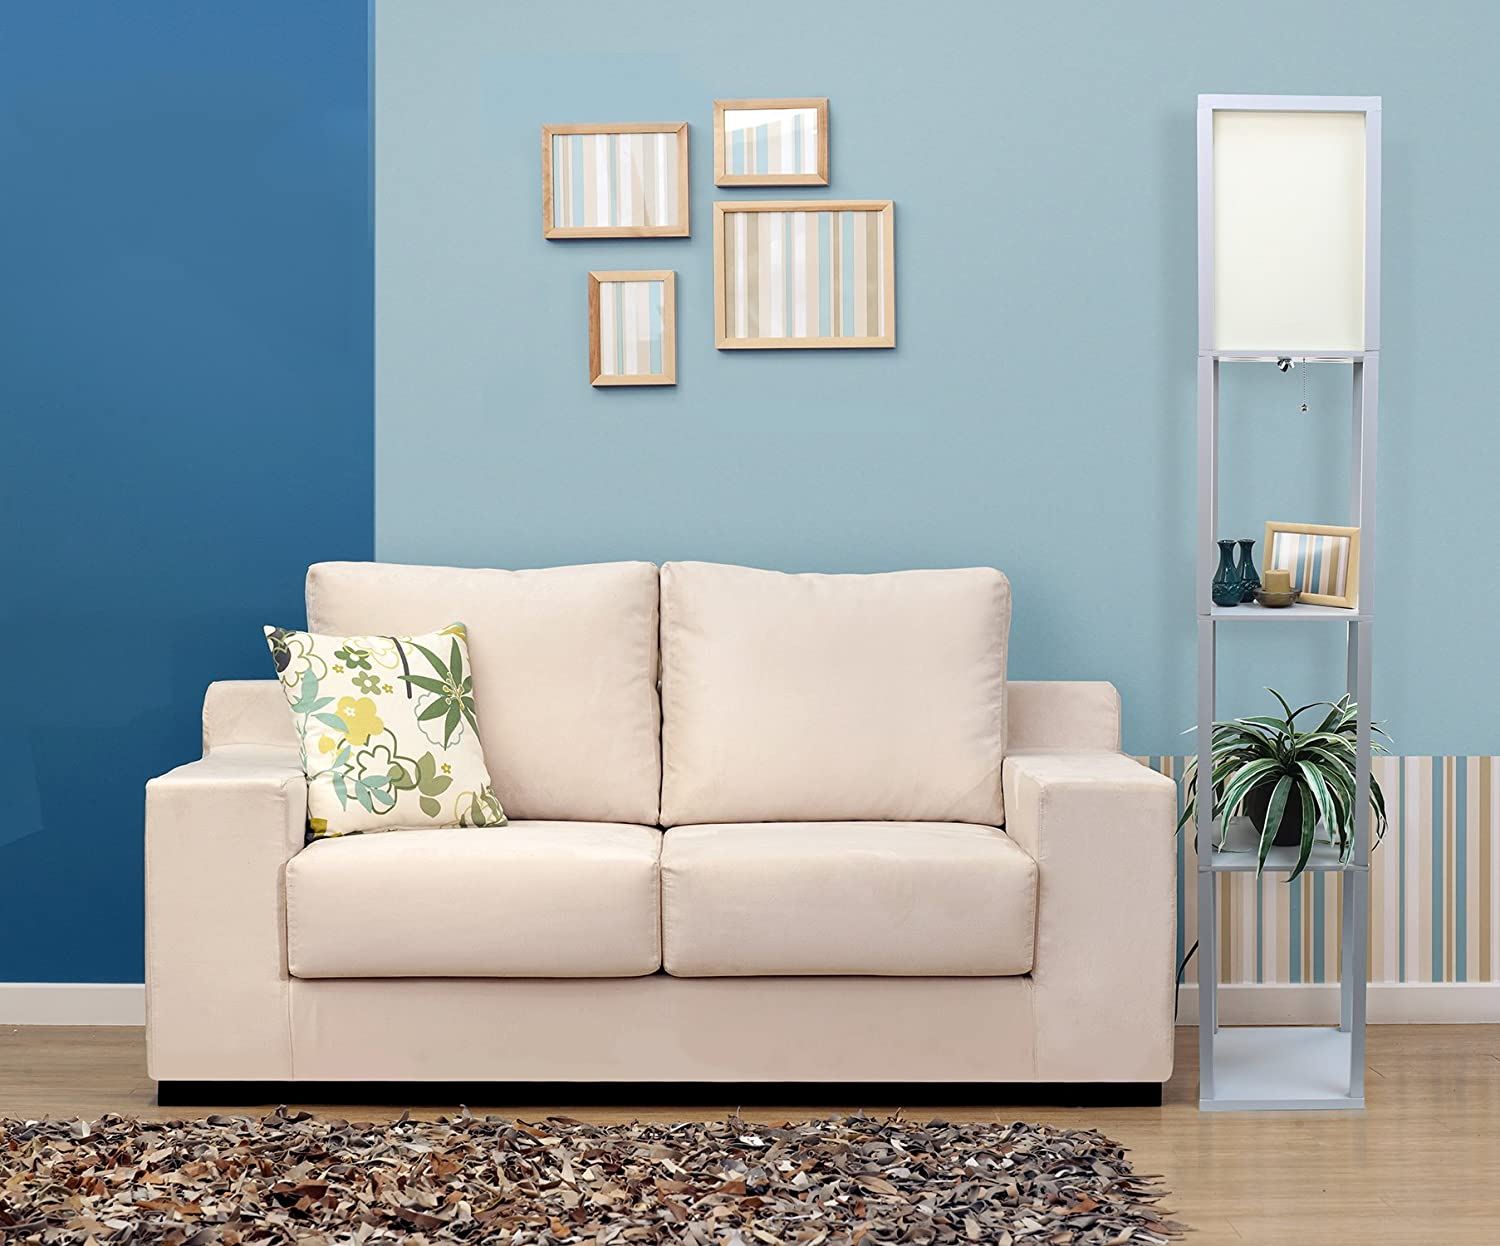 Furniture of america chaves contemporary 3 piece sofa set - Amazon Com Simple Designs Home Lf1014 Gry Floor Lamp Organizer Storage Shelf With Linen Shade Gray Home Improvement